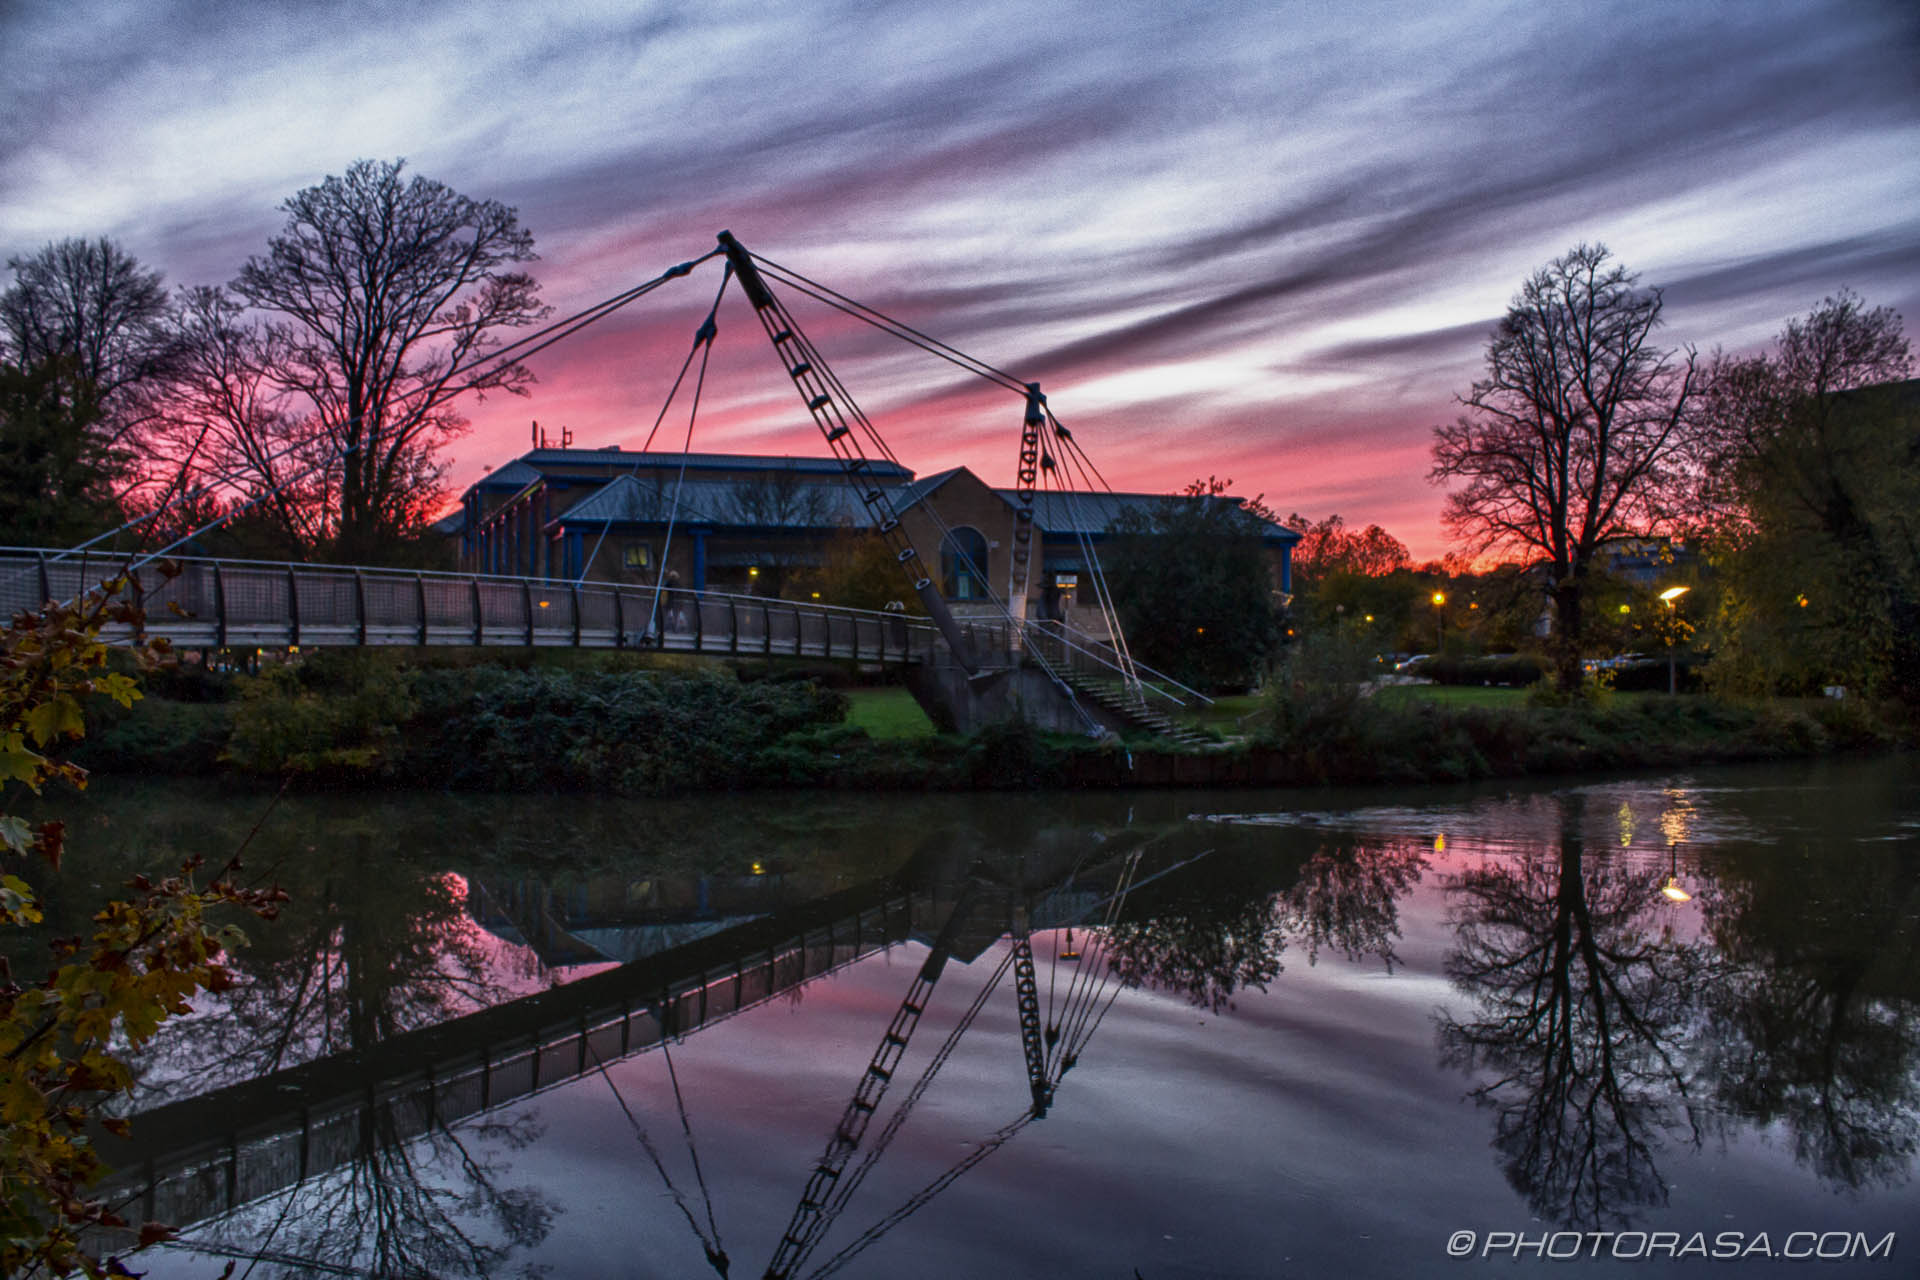 http://photorasa.com/red-sky-night/dramatic-red-sky-at-maidstone-footbridge/